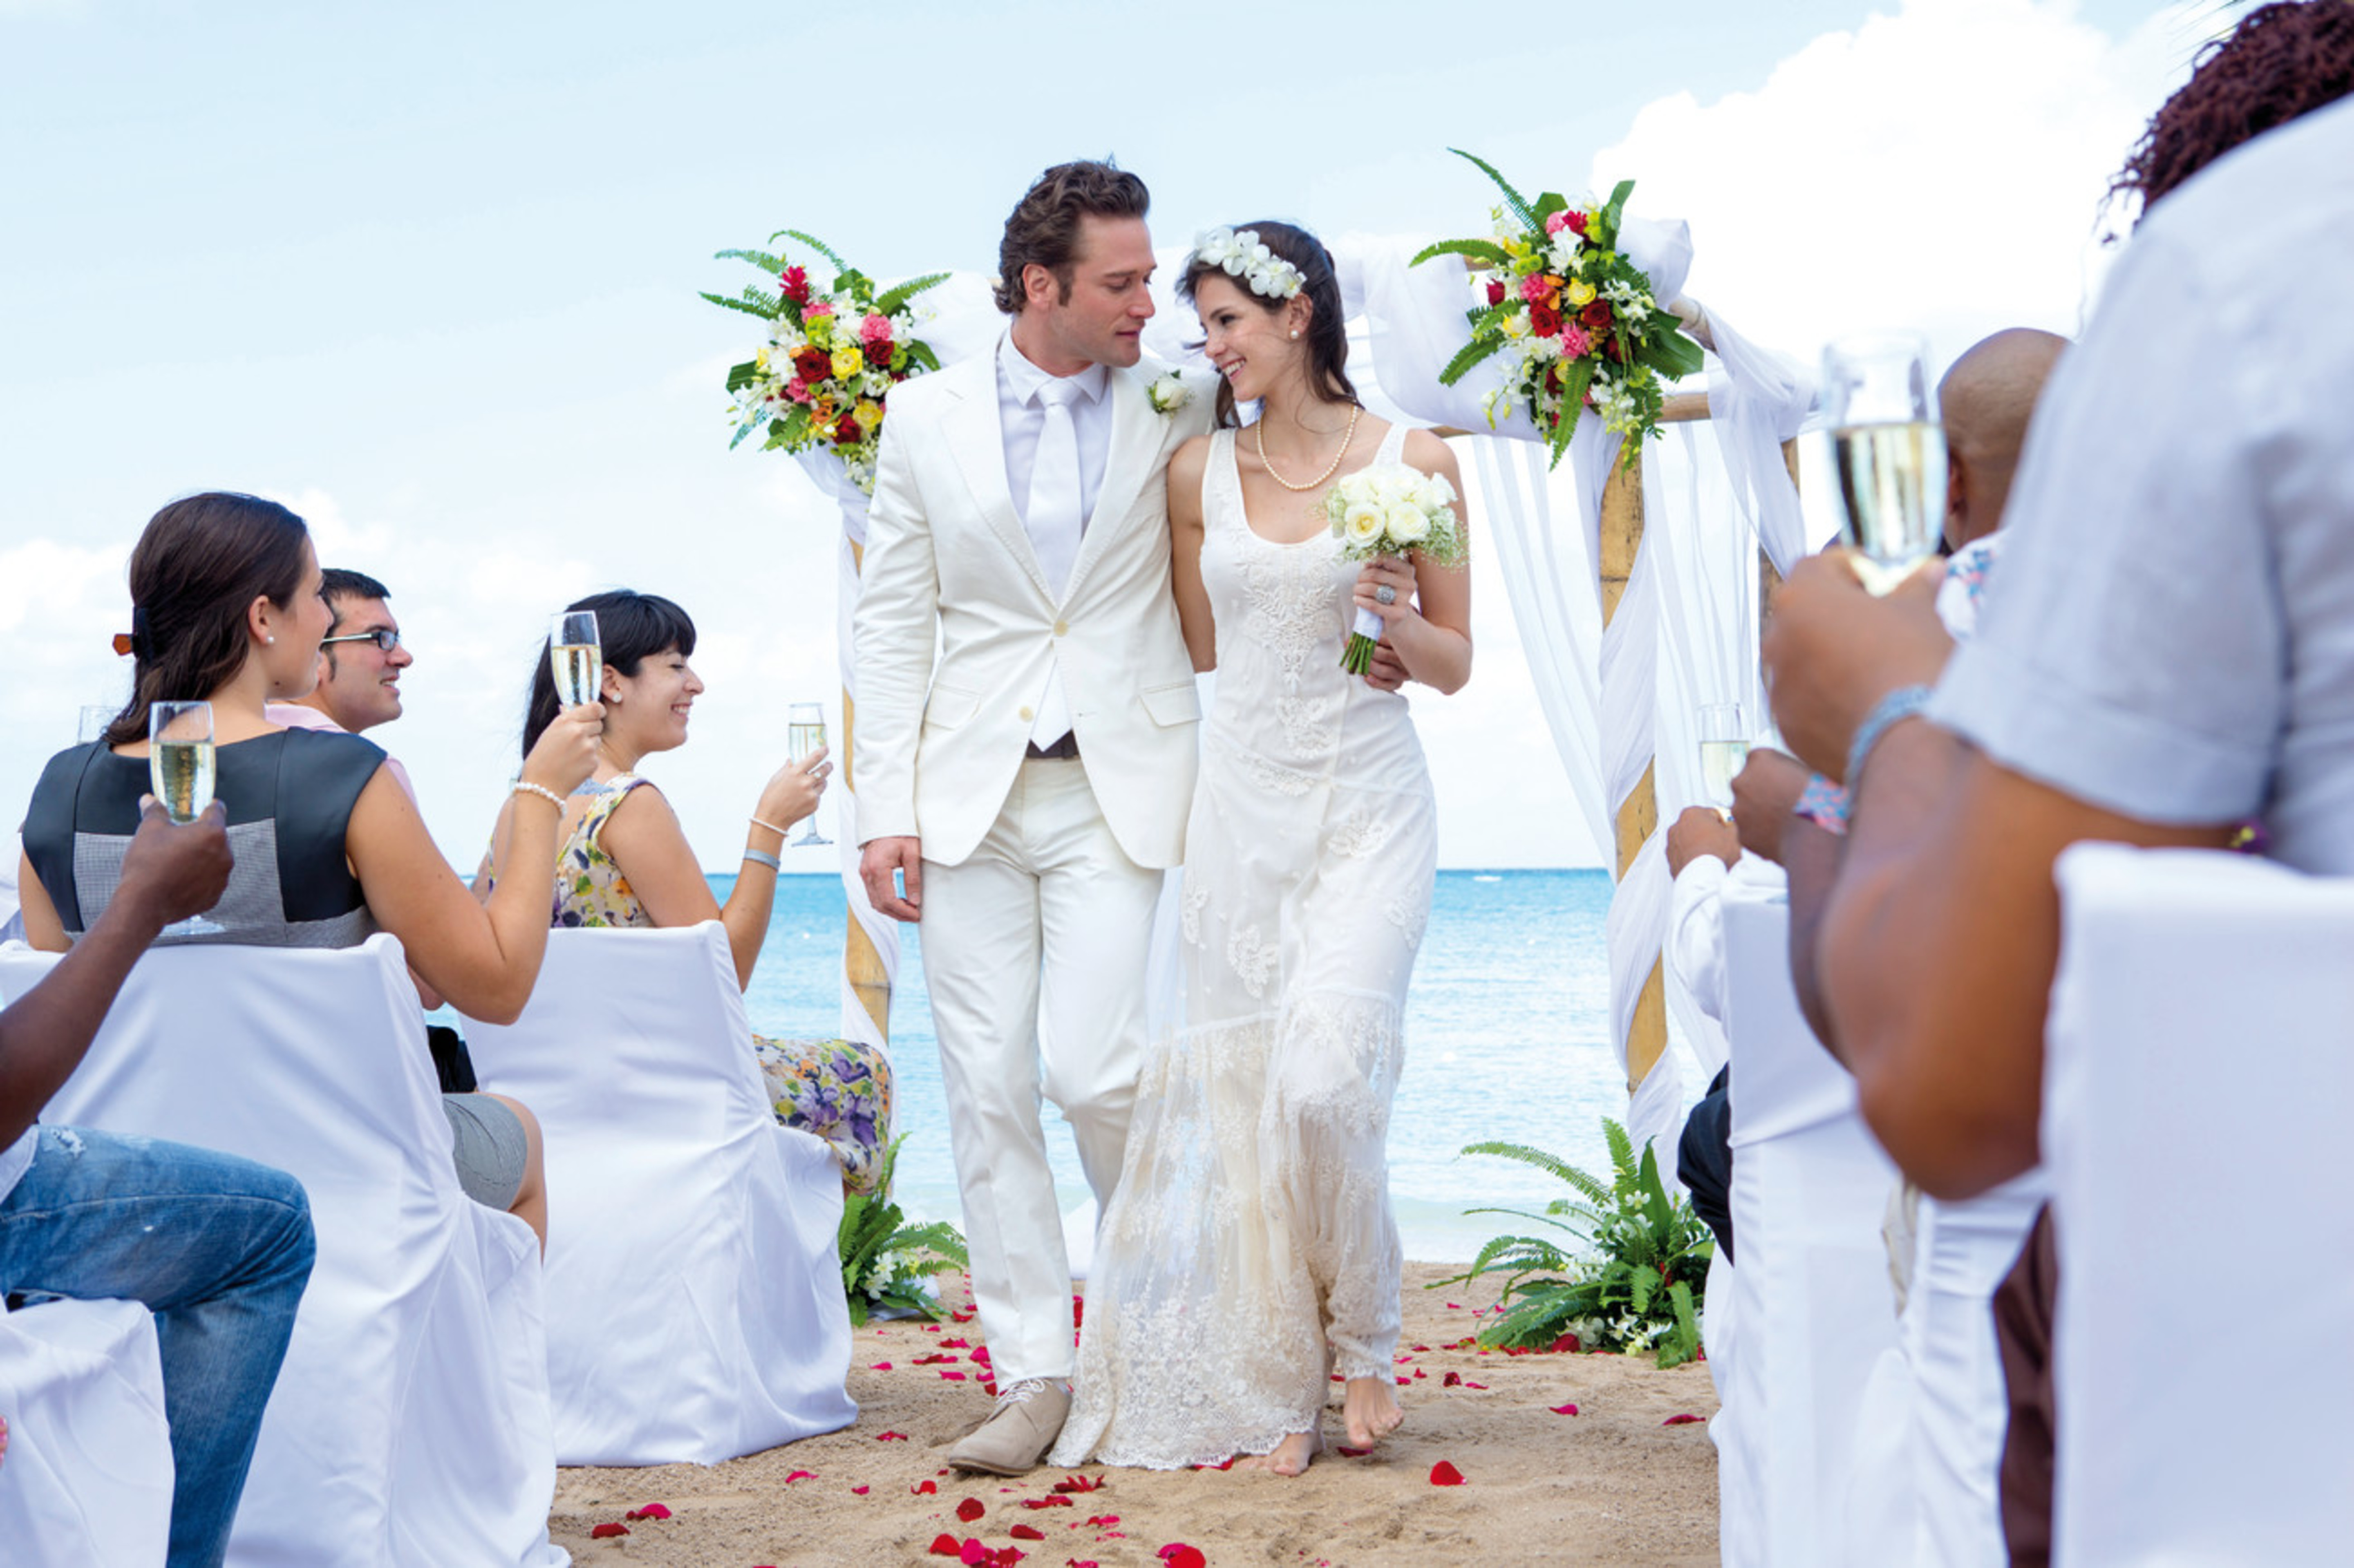 The Best Day of Your Life Deserves Weddings by RIU